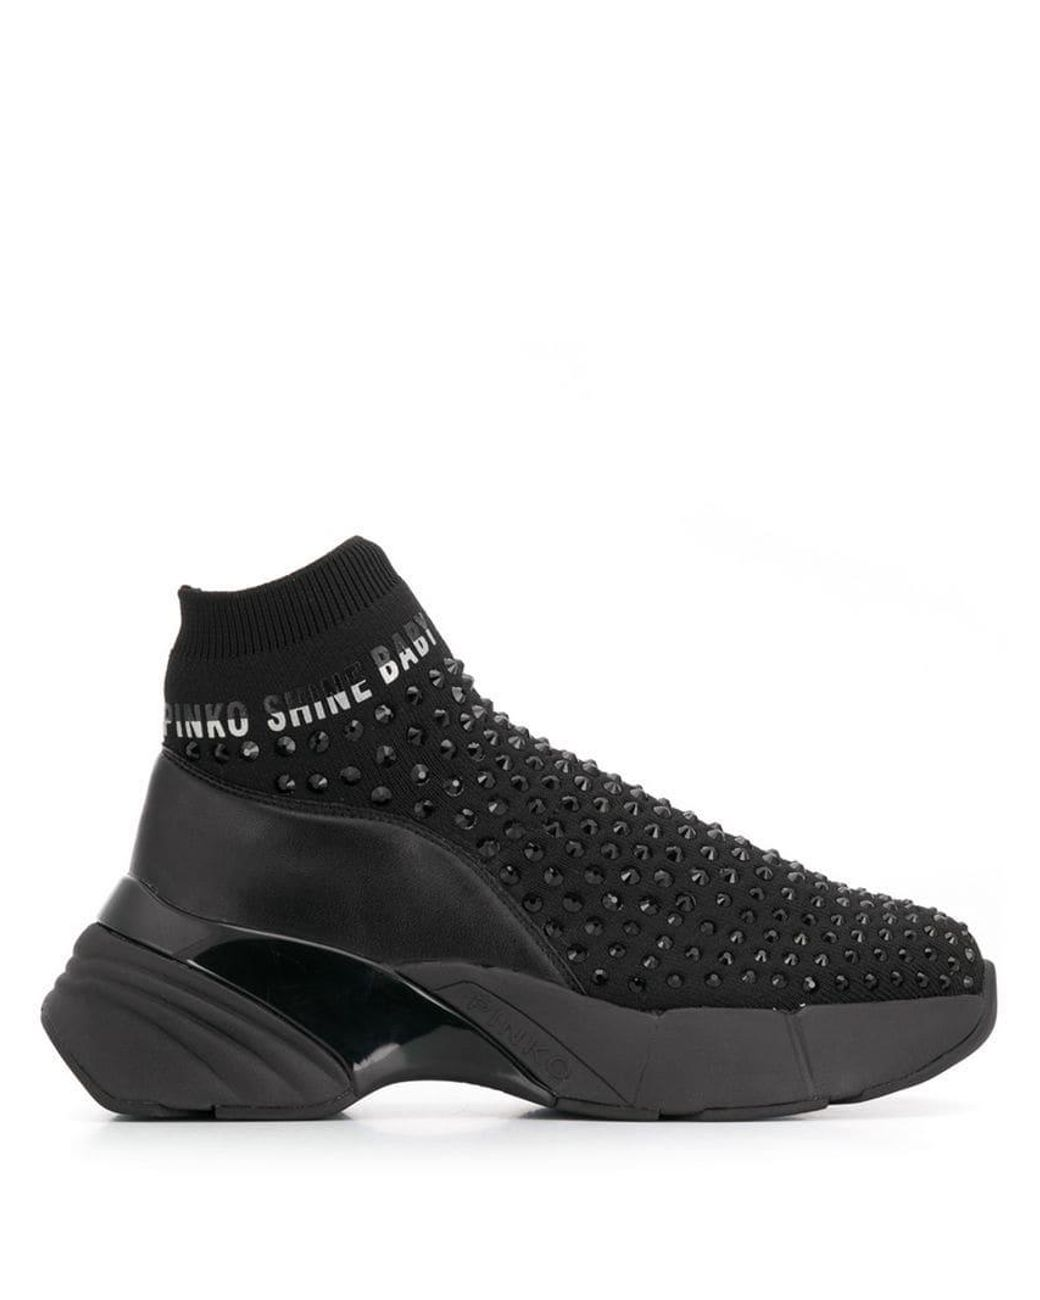 74e88bc3bc0 Pinko Studded Sock Sneakers in Black - Lyst